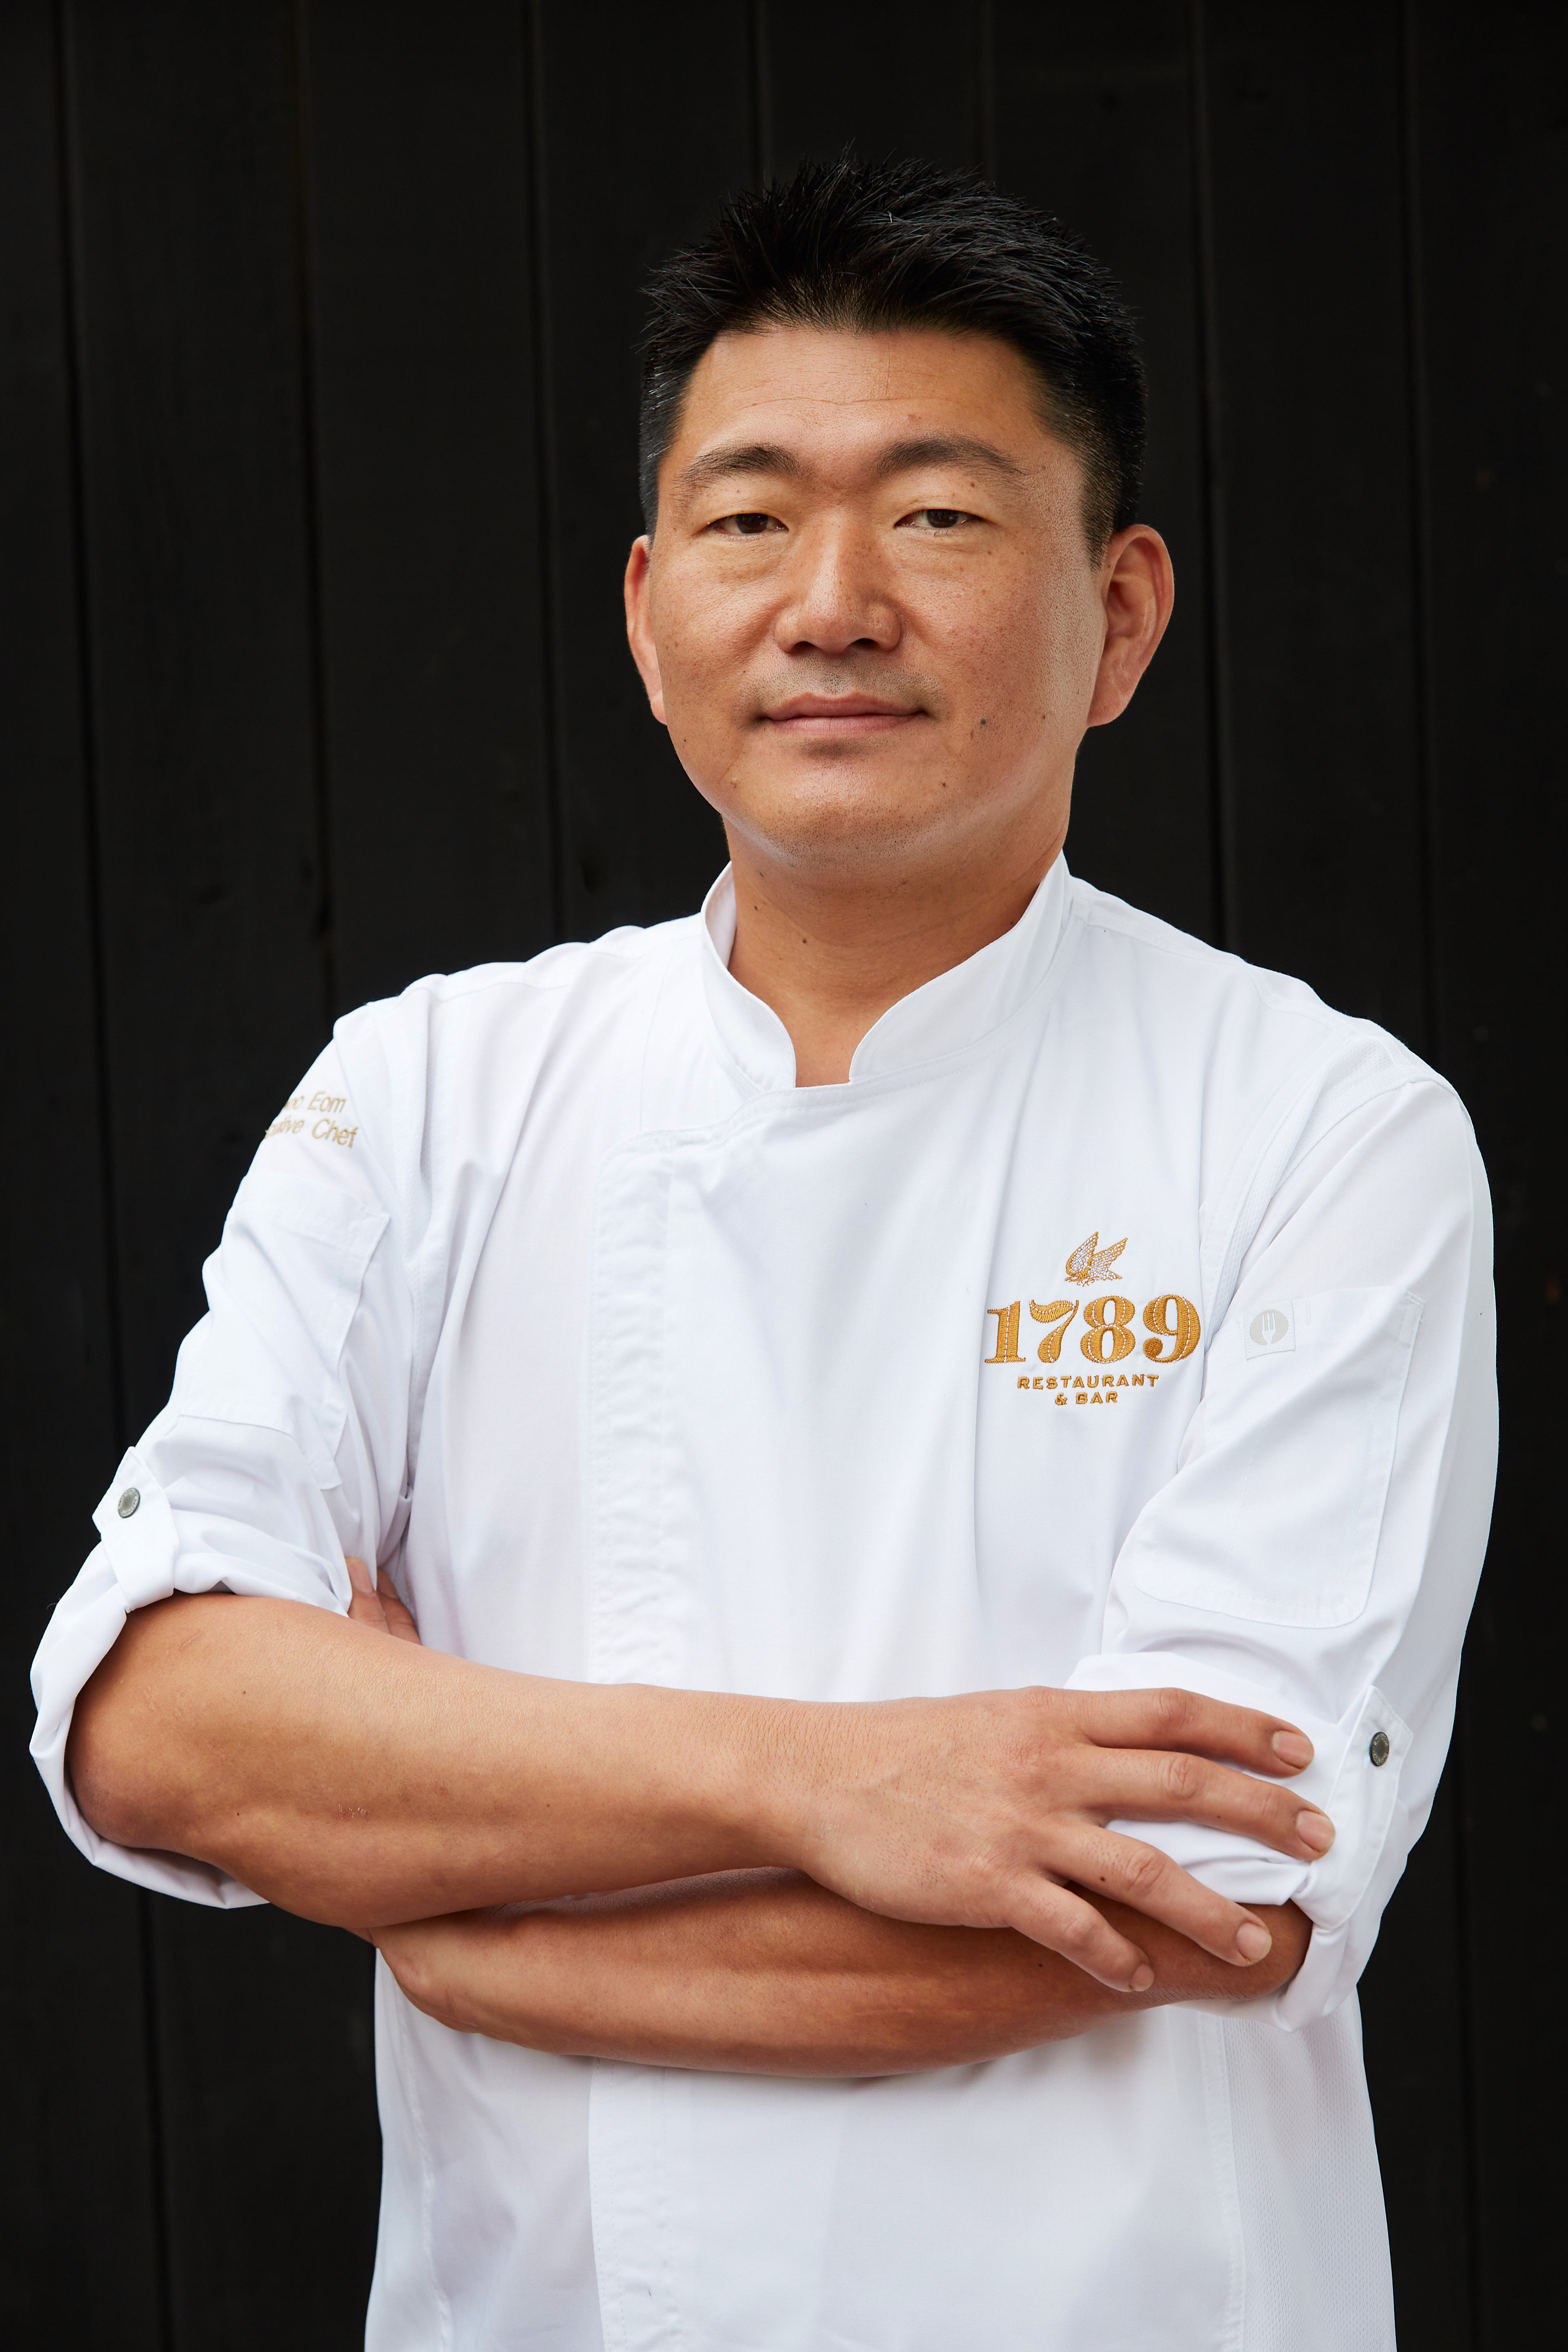 Kyoo Eom is the new executive chef at 1789